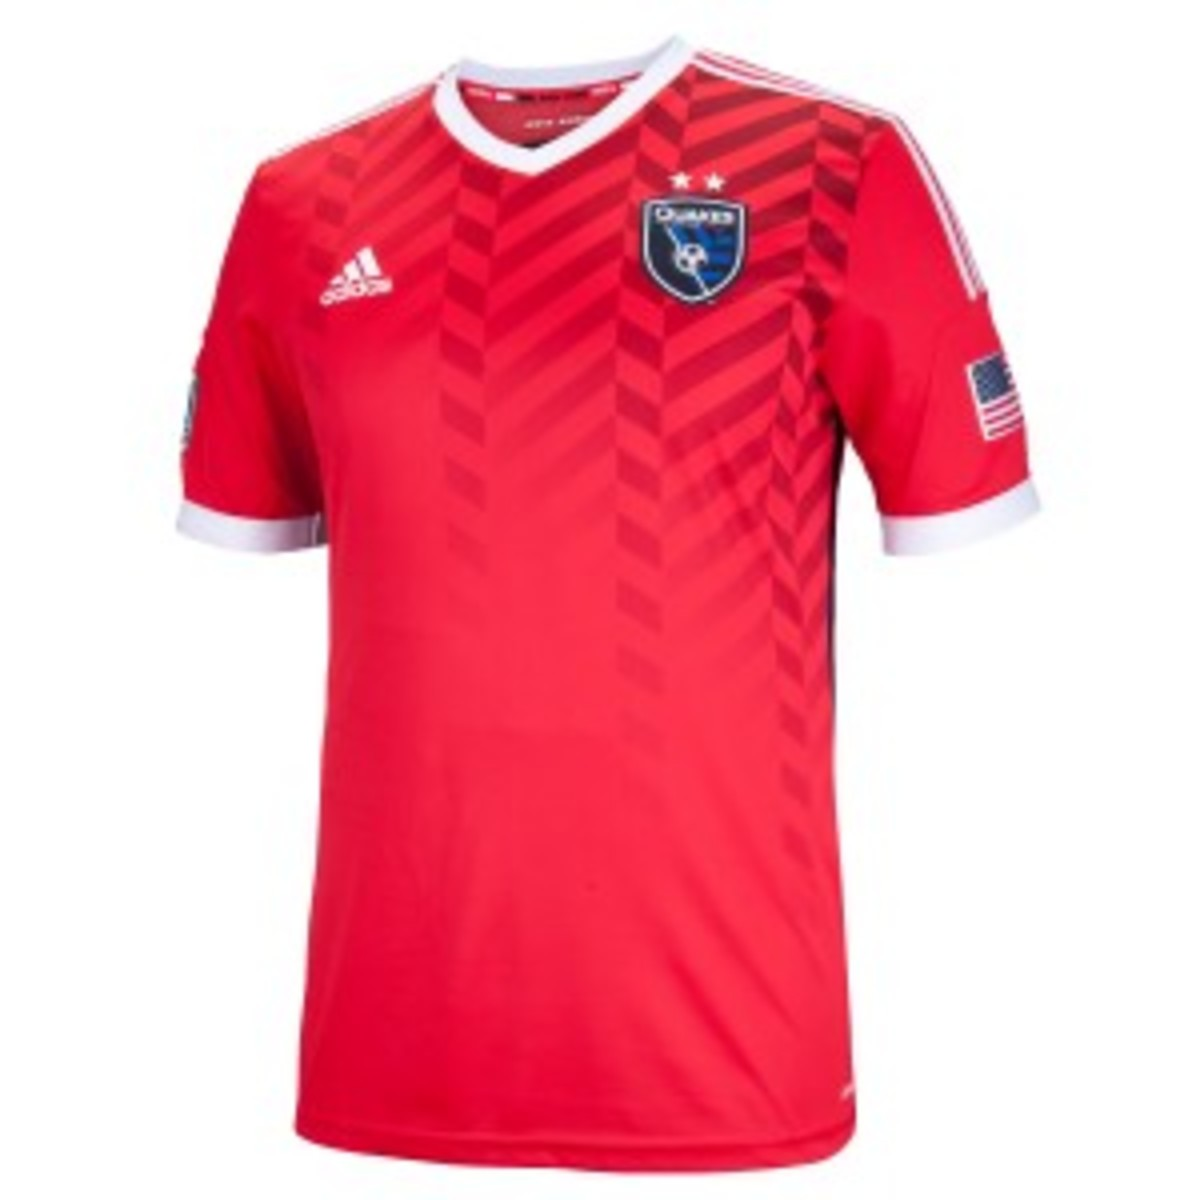 Earthquakes secondary jersey